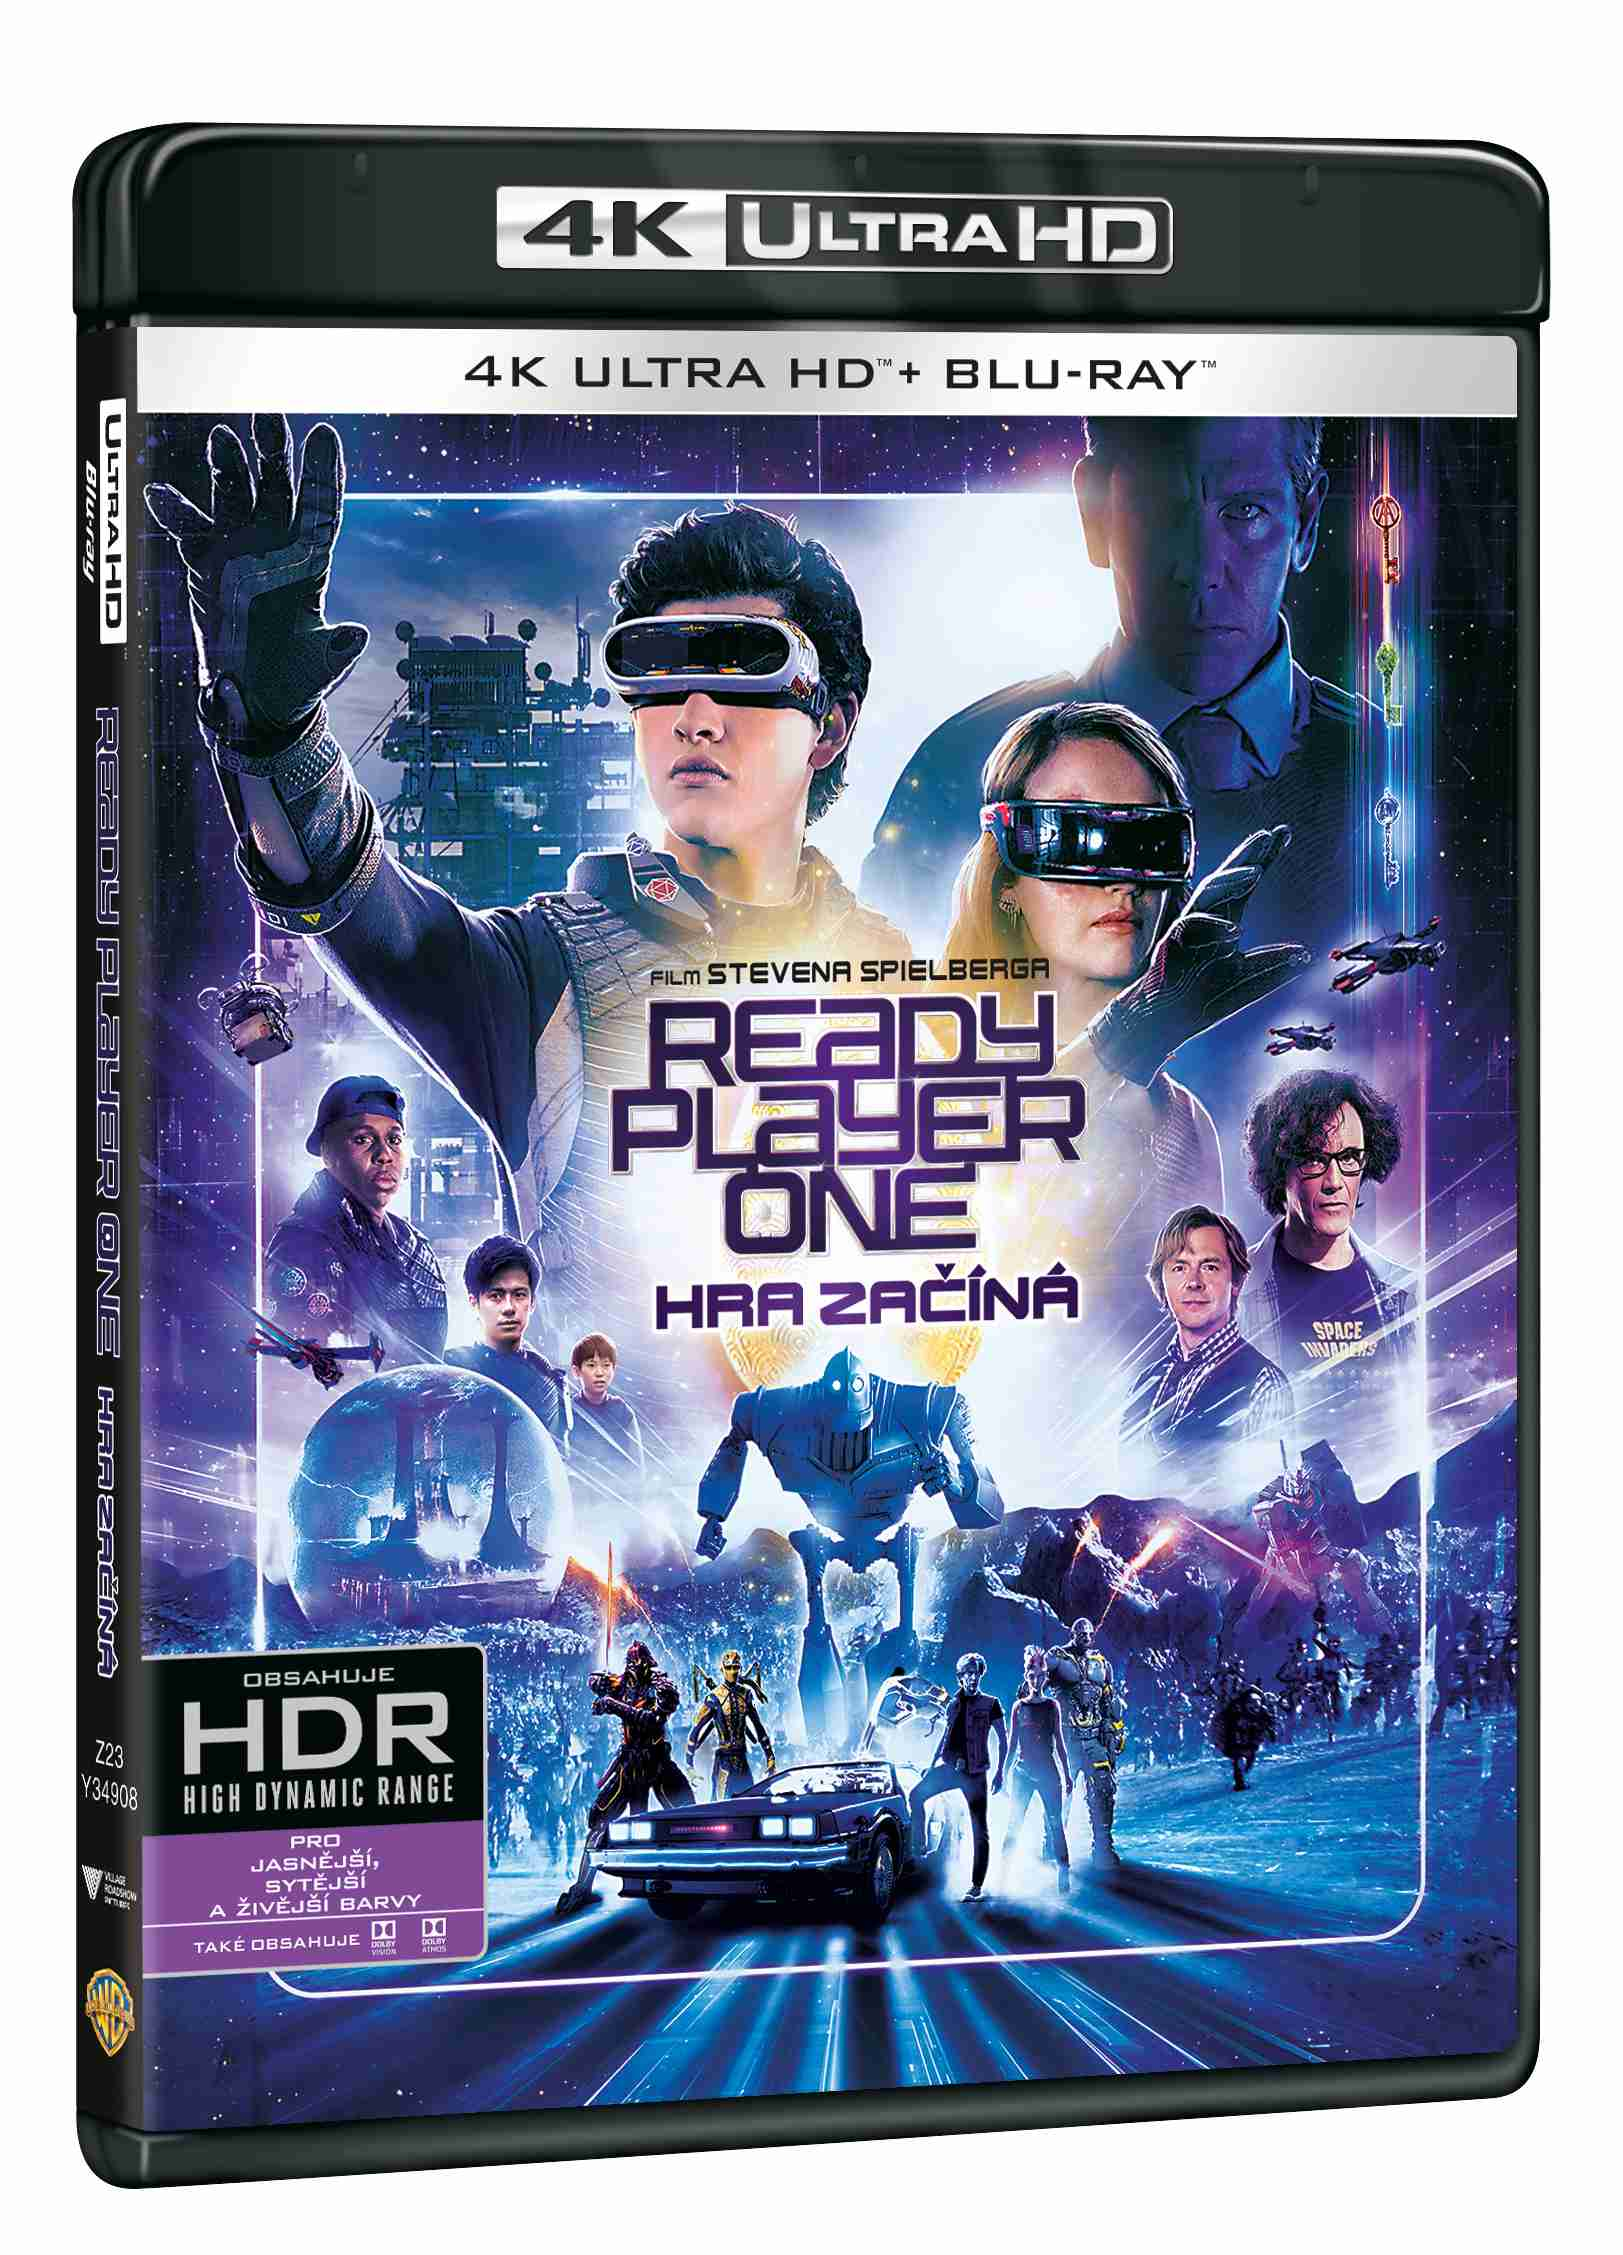 Ready Player One: Hra začíná (4K ULTRA HD) - UHD Blu-ray + Blu-ray (2 BD)